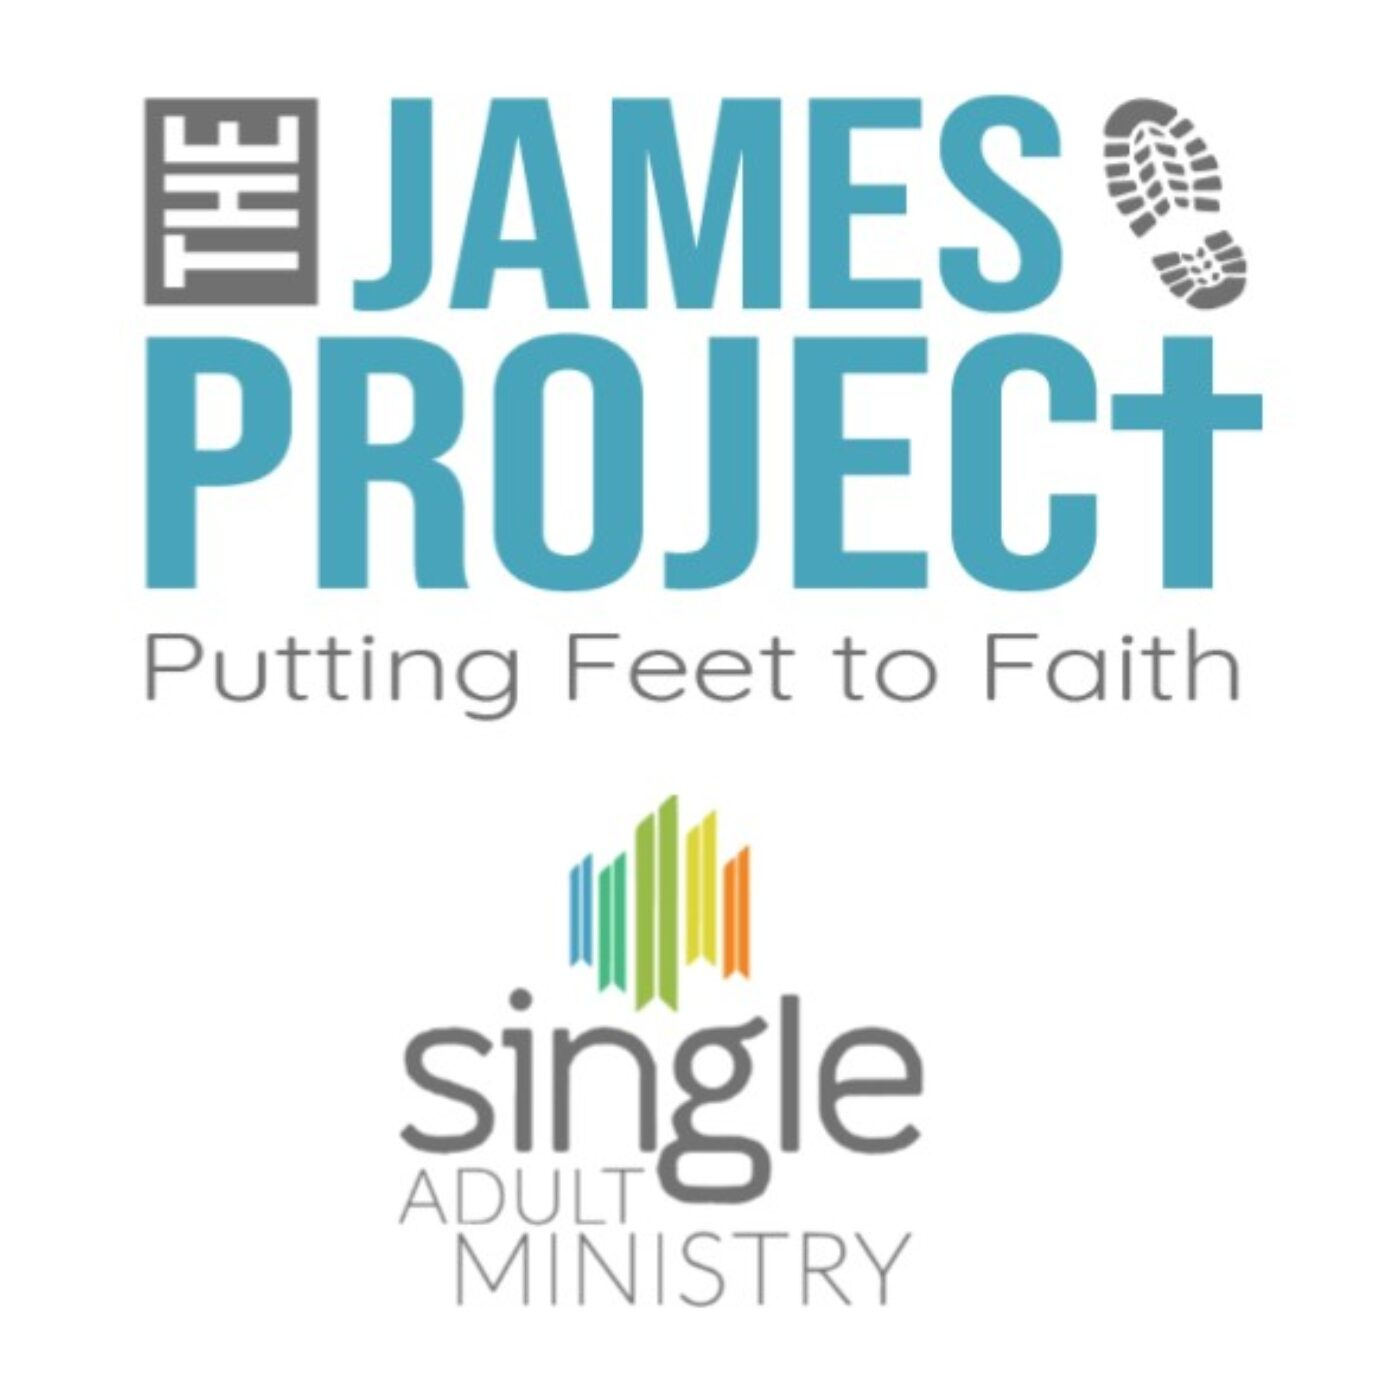 James Project for website